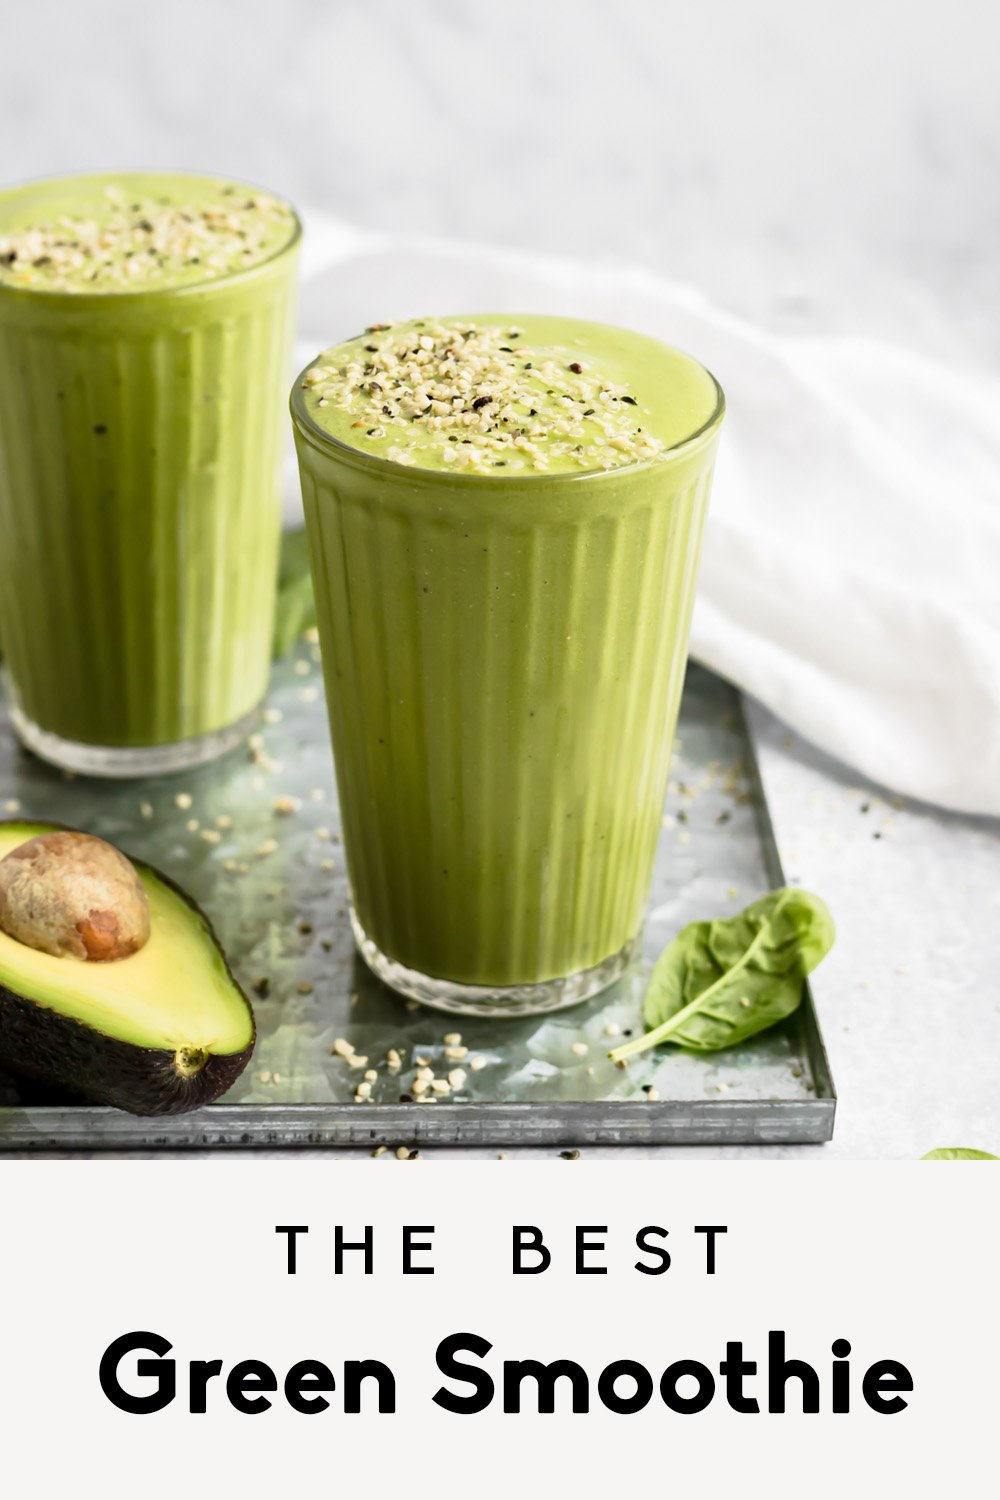 green smoothie photo with text overlay